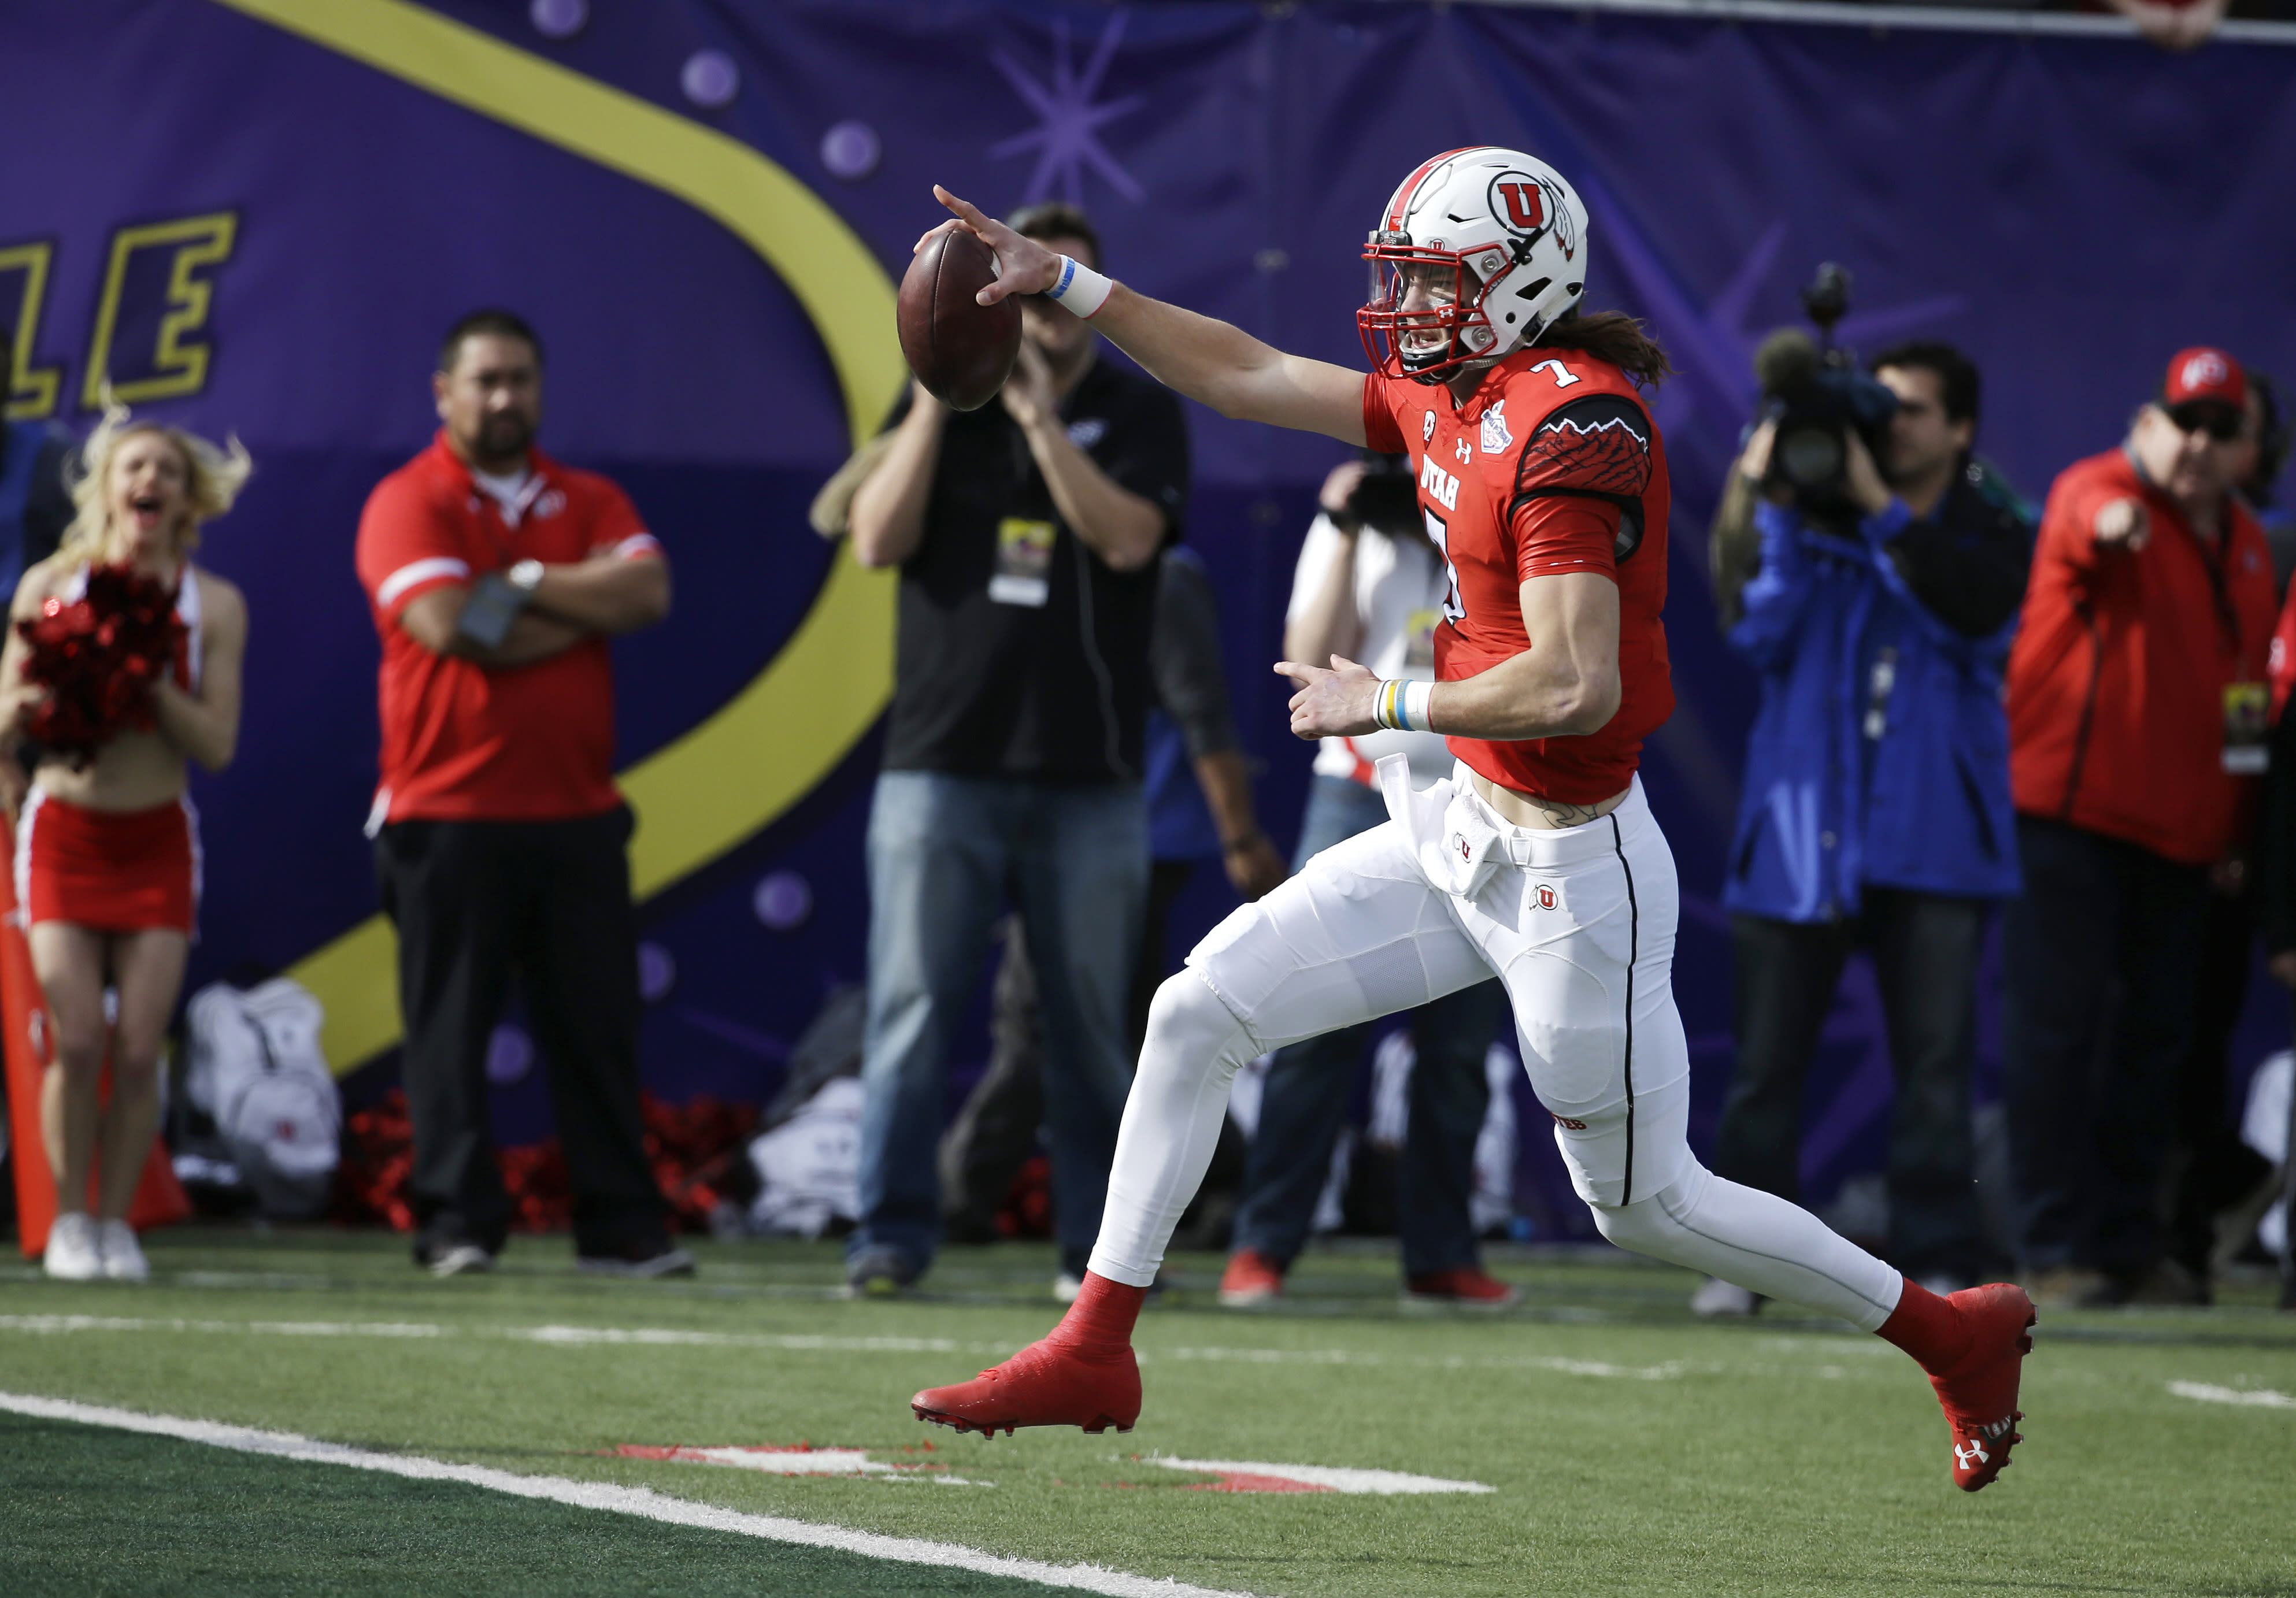 Utah's offense comes alive in 45-10 thrashing of Colorado State